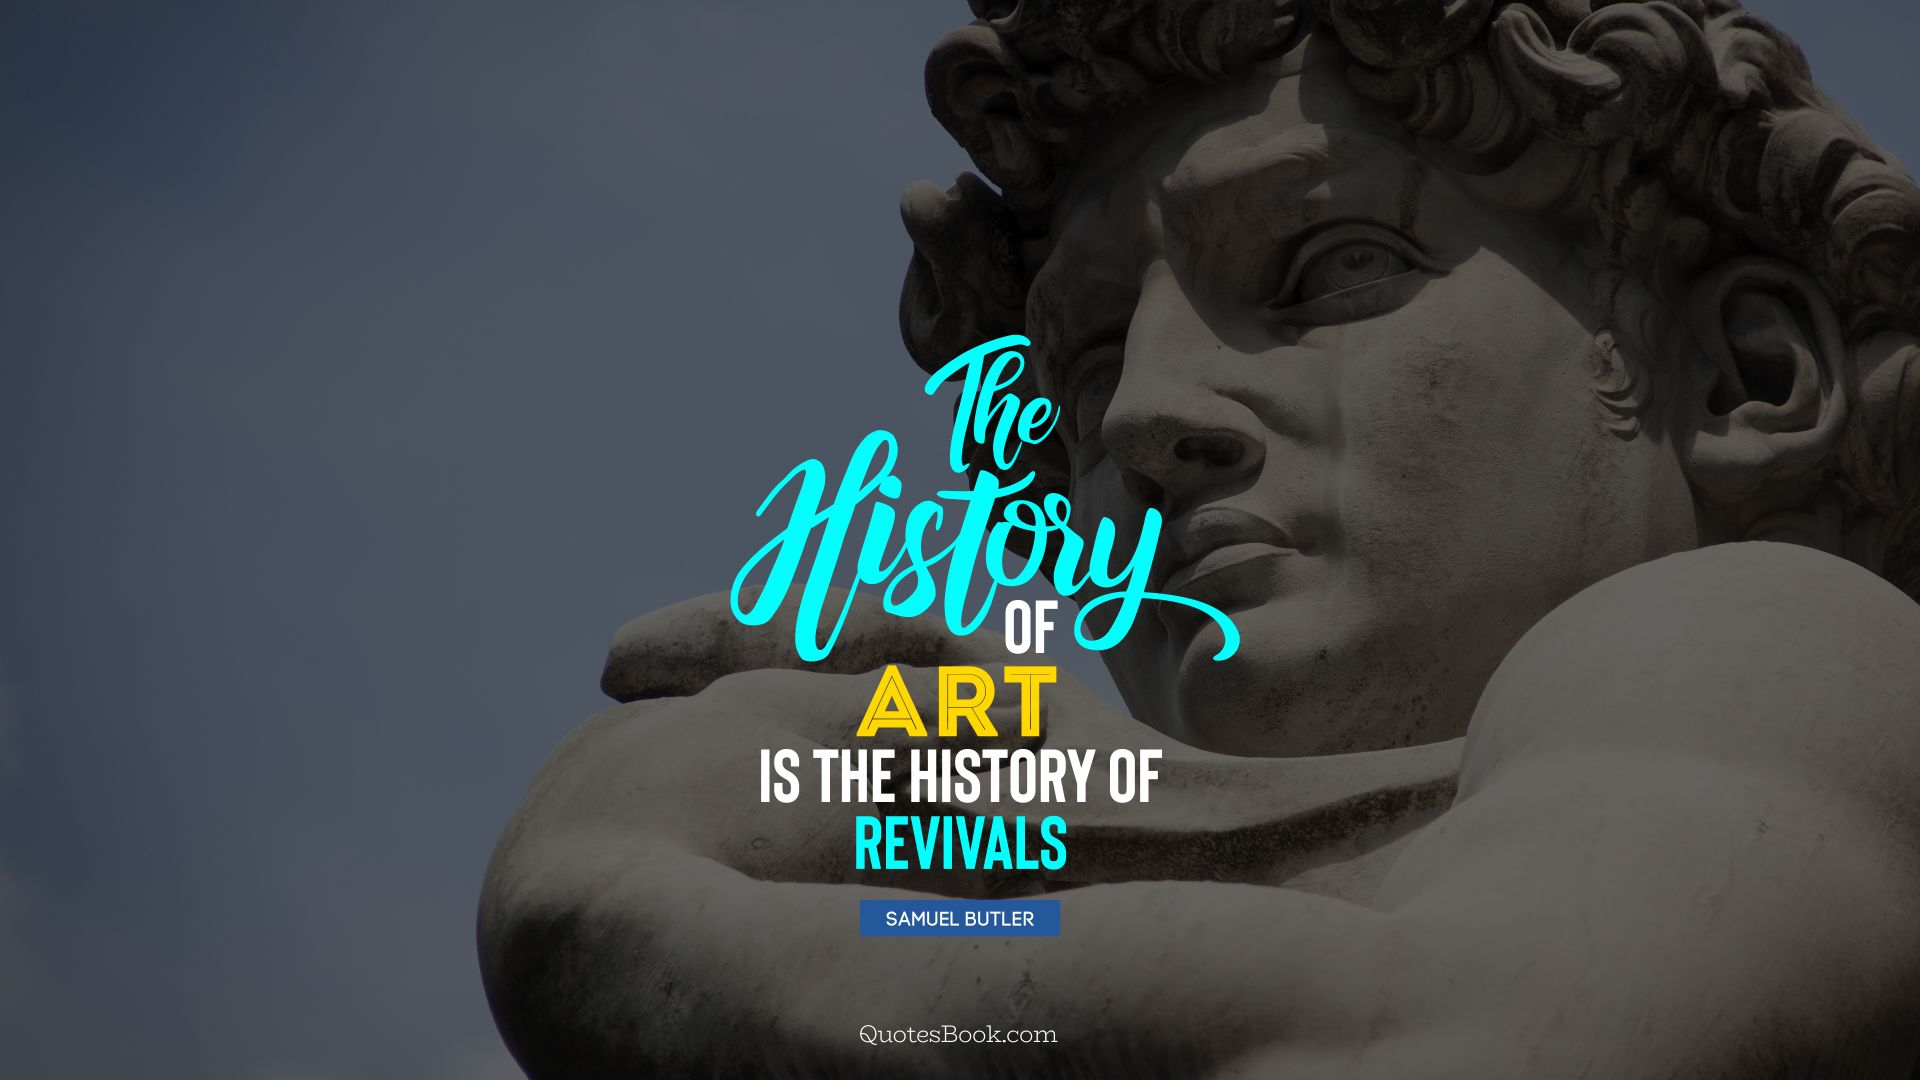 The history of art is the history of revivals  . - Quote by Samuel Butler